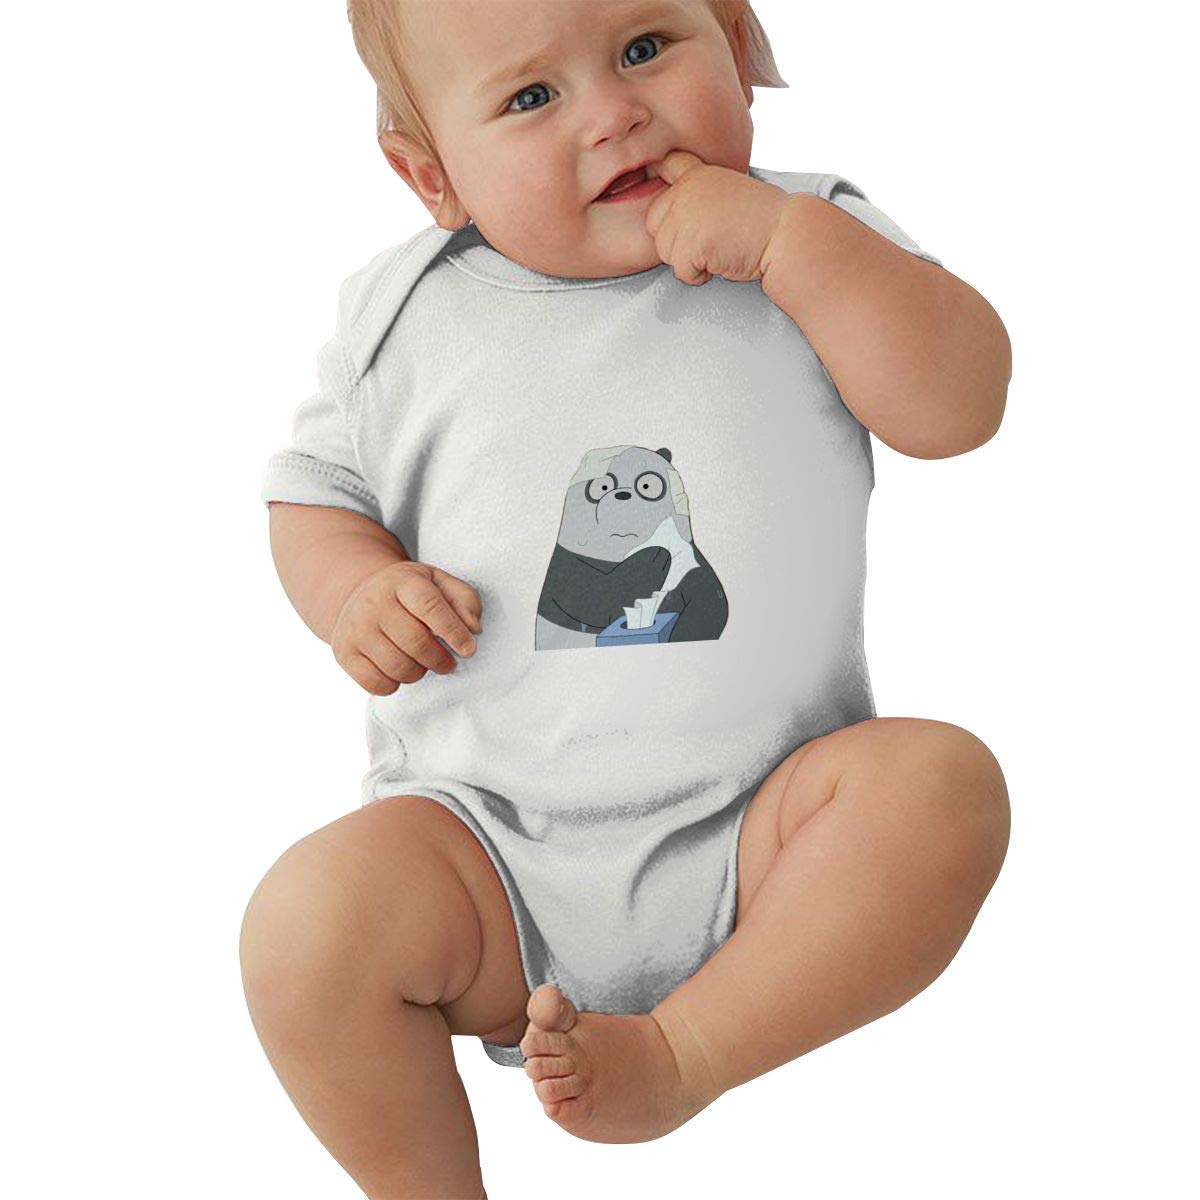 KunYuHeng Unisex Baby Round Neck Short-Sleeve Romper We Bare Bears Funny Jumpsuits Sleepwear Black